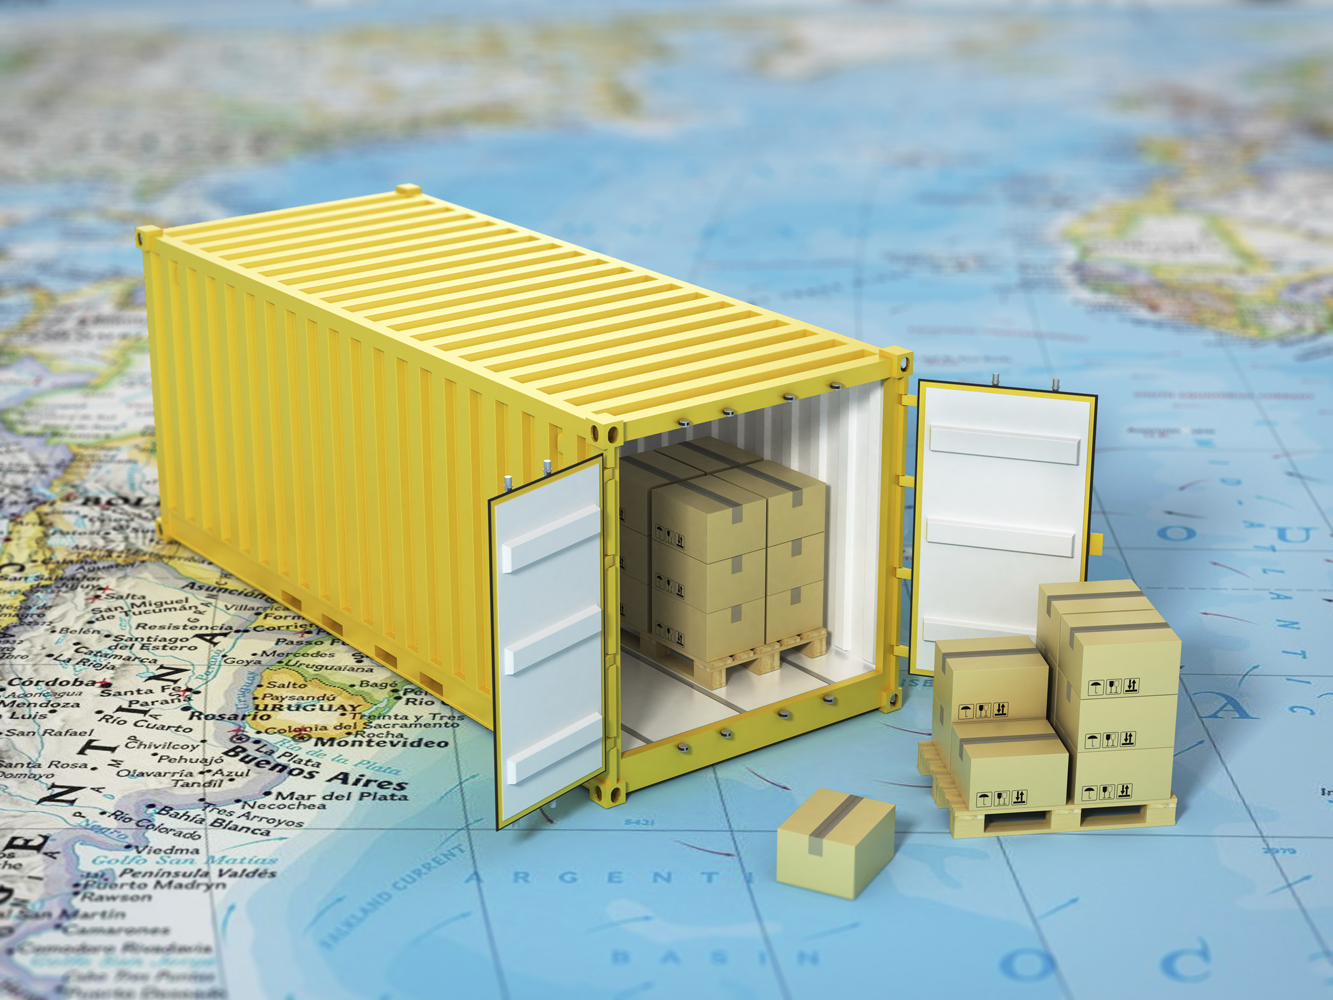 Conceptual photo of a shipping container on a map